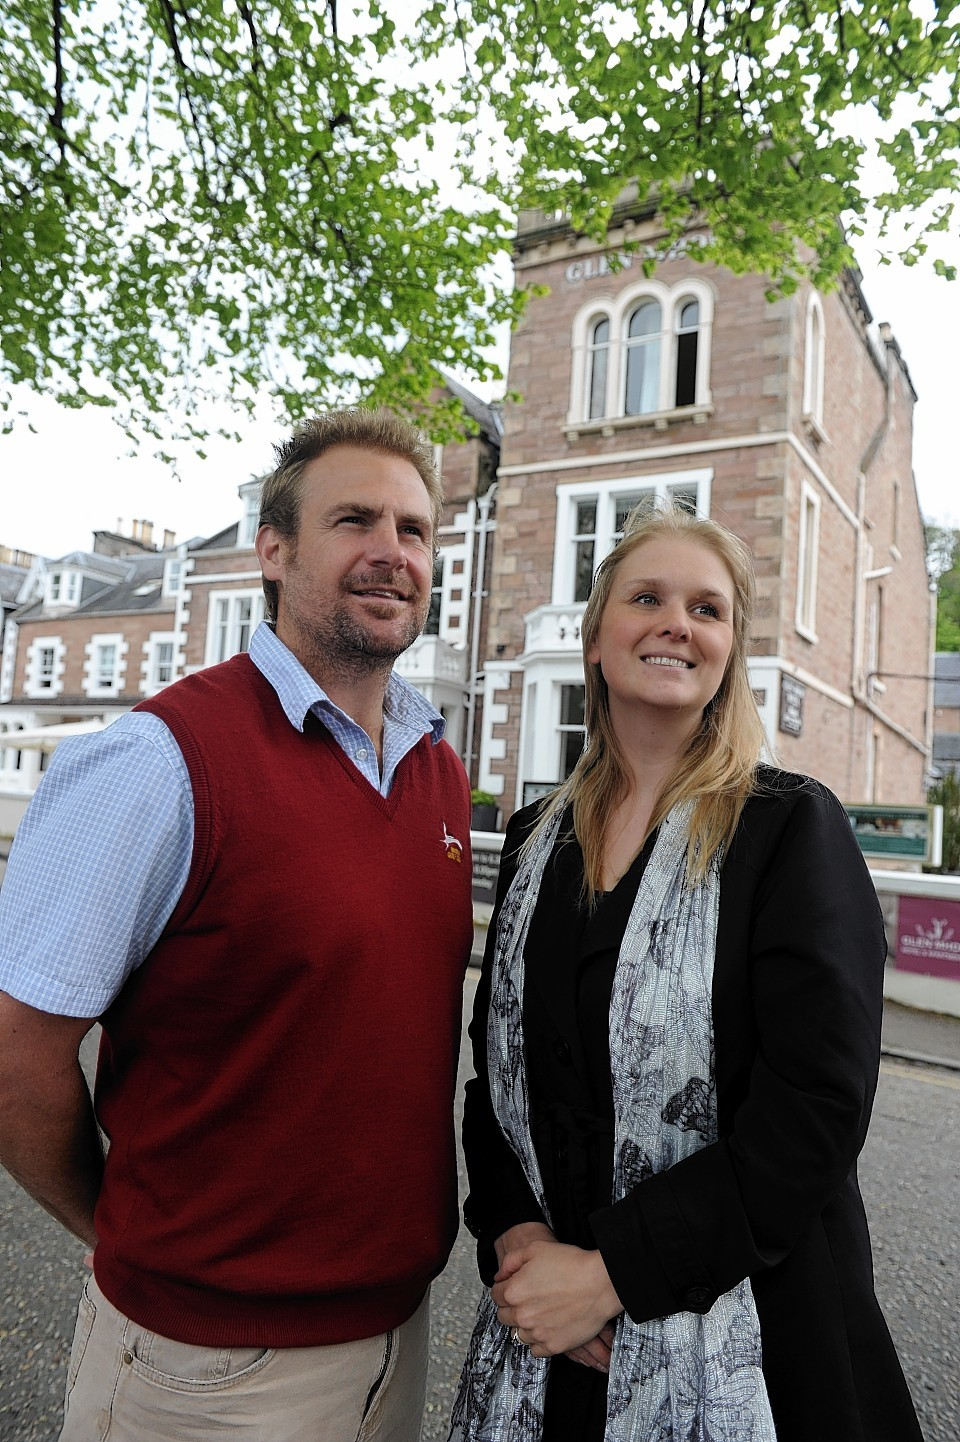 Jon Erasmus with his wife Victoria outside the Glen Mhor Hotel